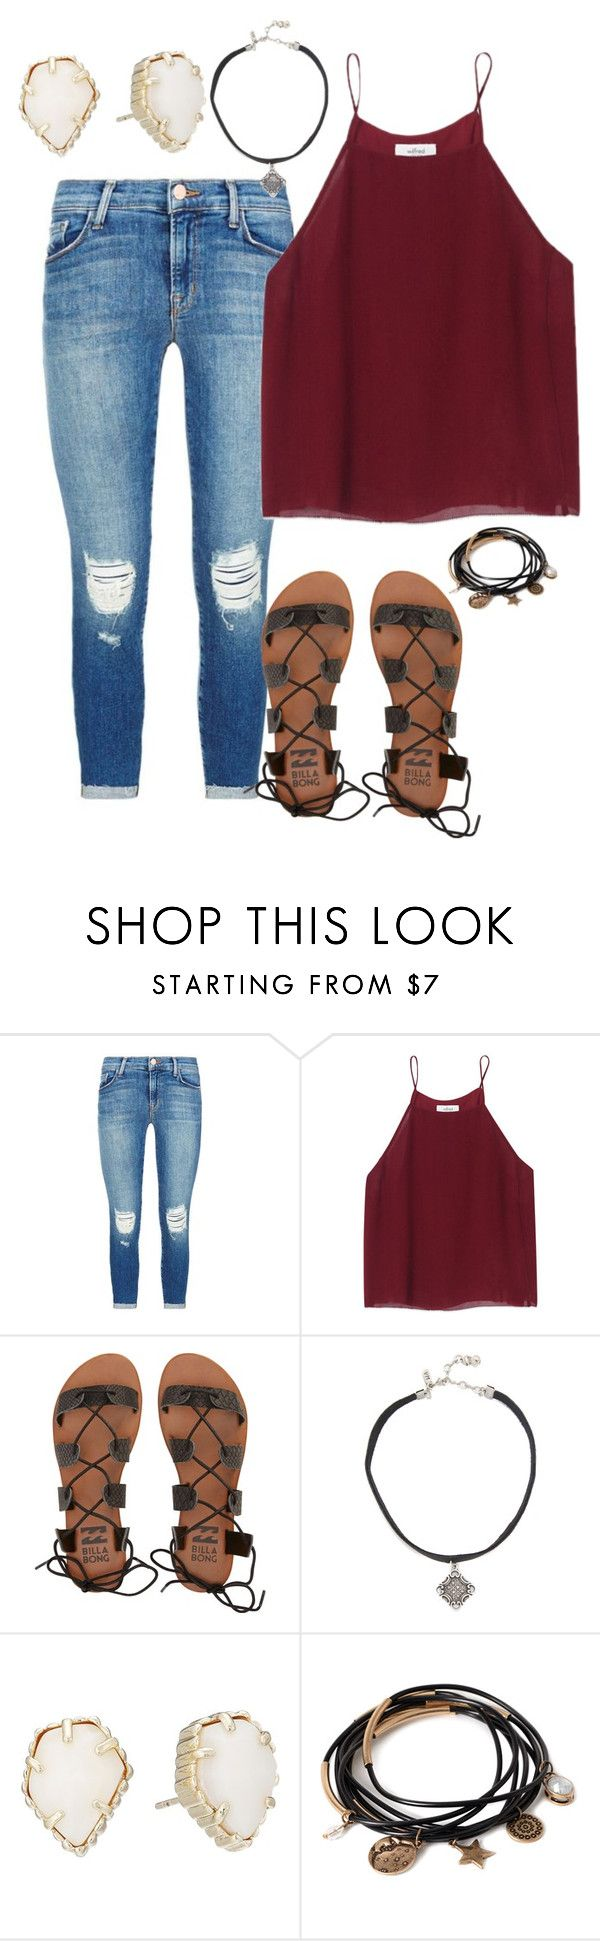 """""""Untitled #1750"""" by elephant10 ❤ liked on Polyvore featuring J Brand, Wilfred, Billabong, Vanessa Mooney, Kendra Scott and Forever 21"""